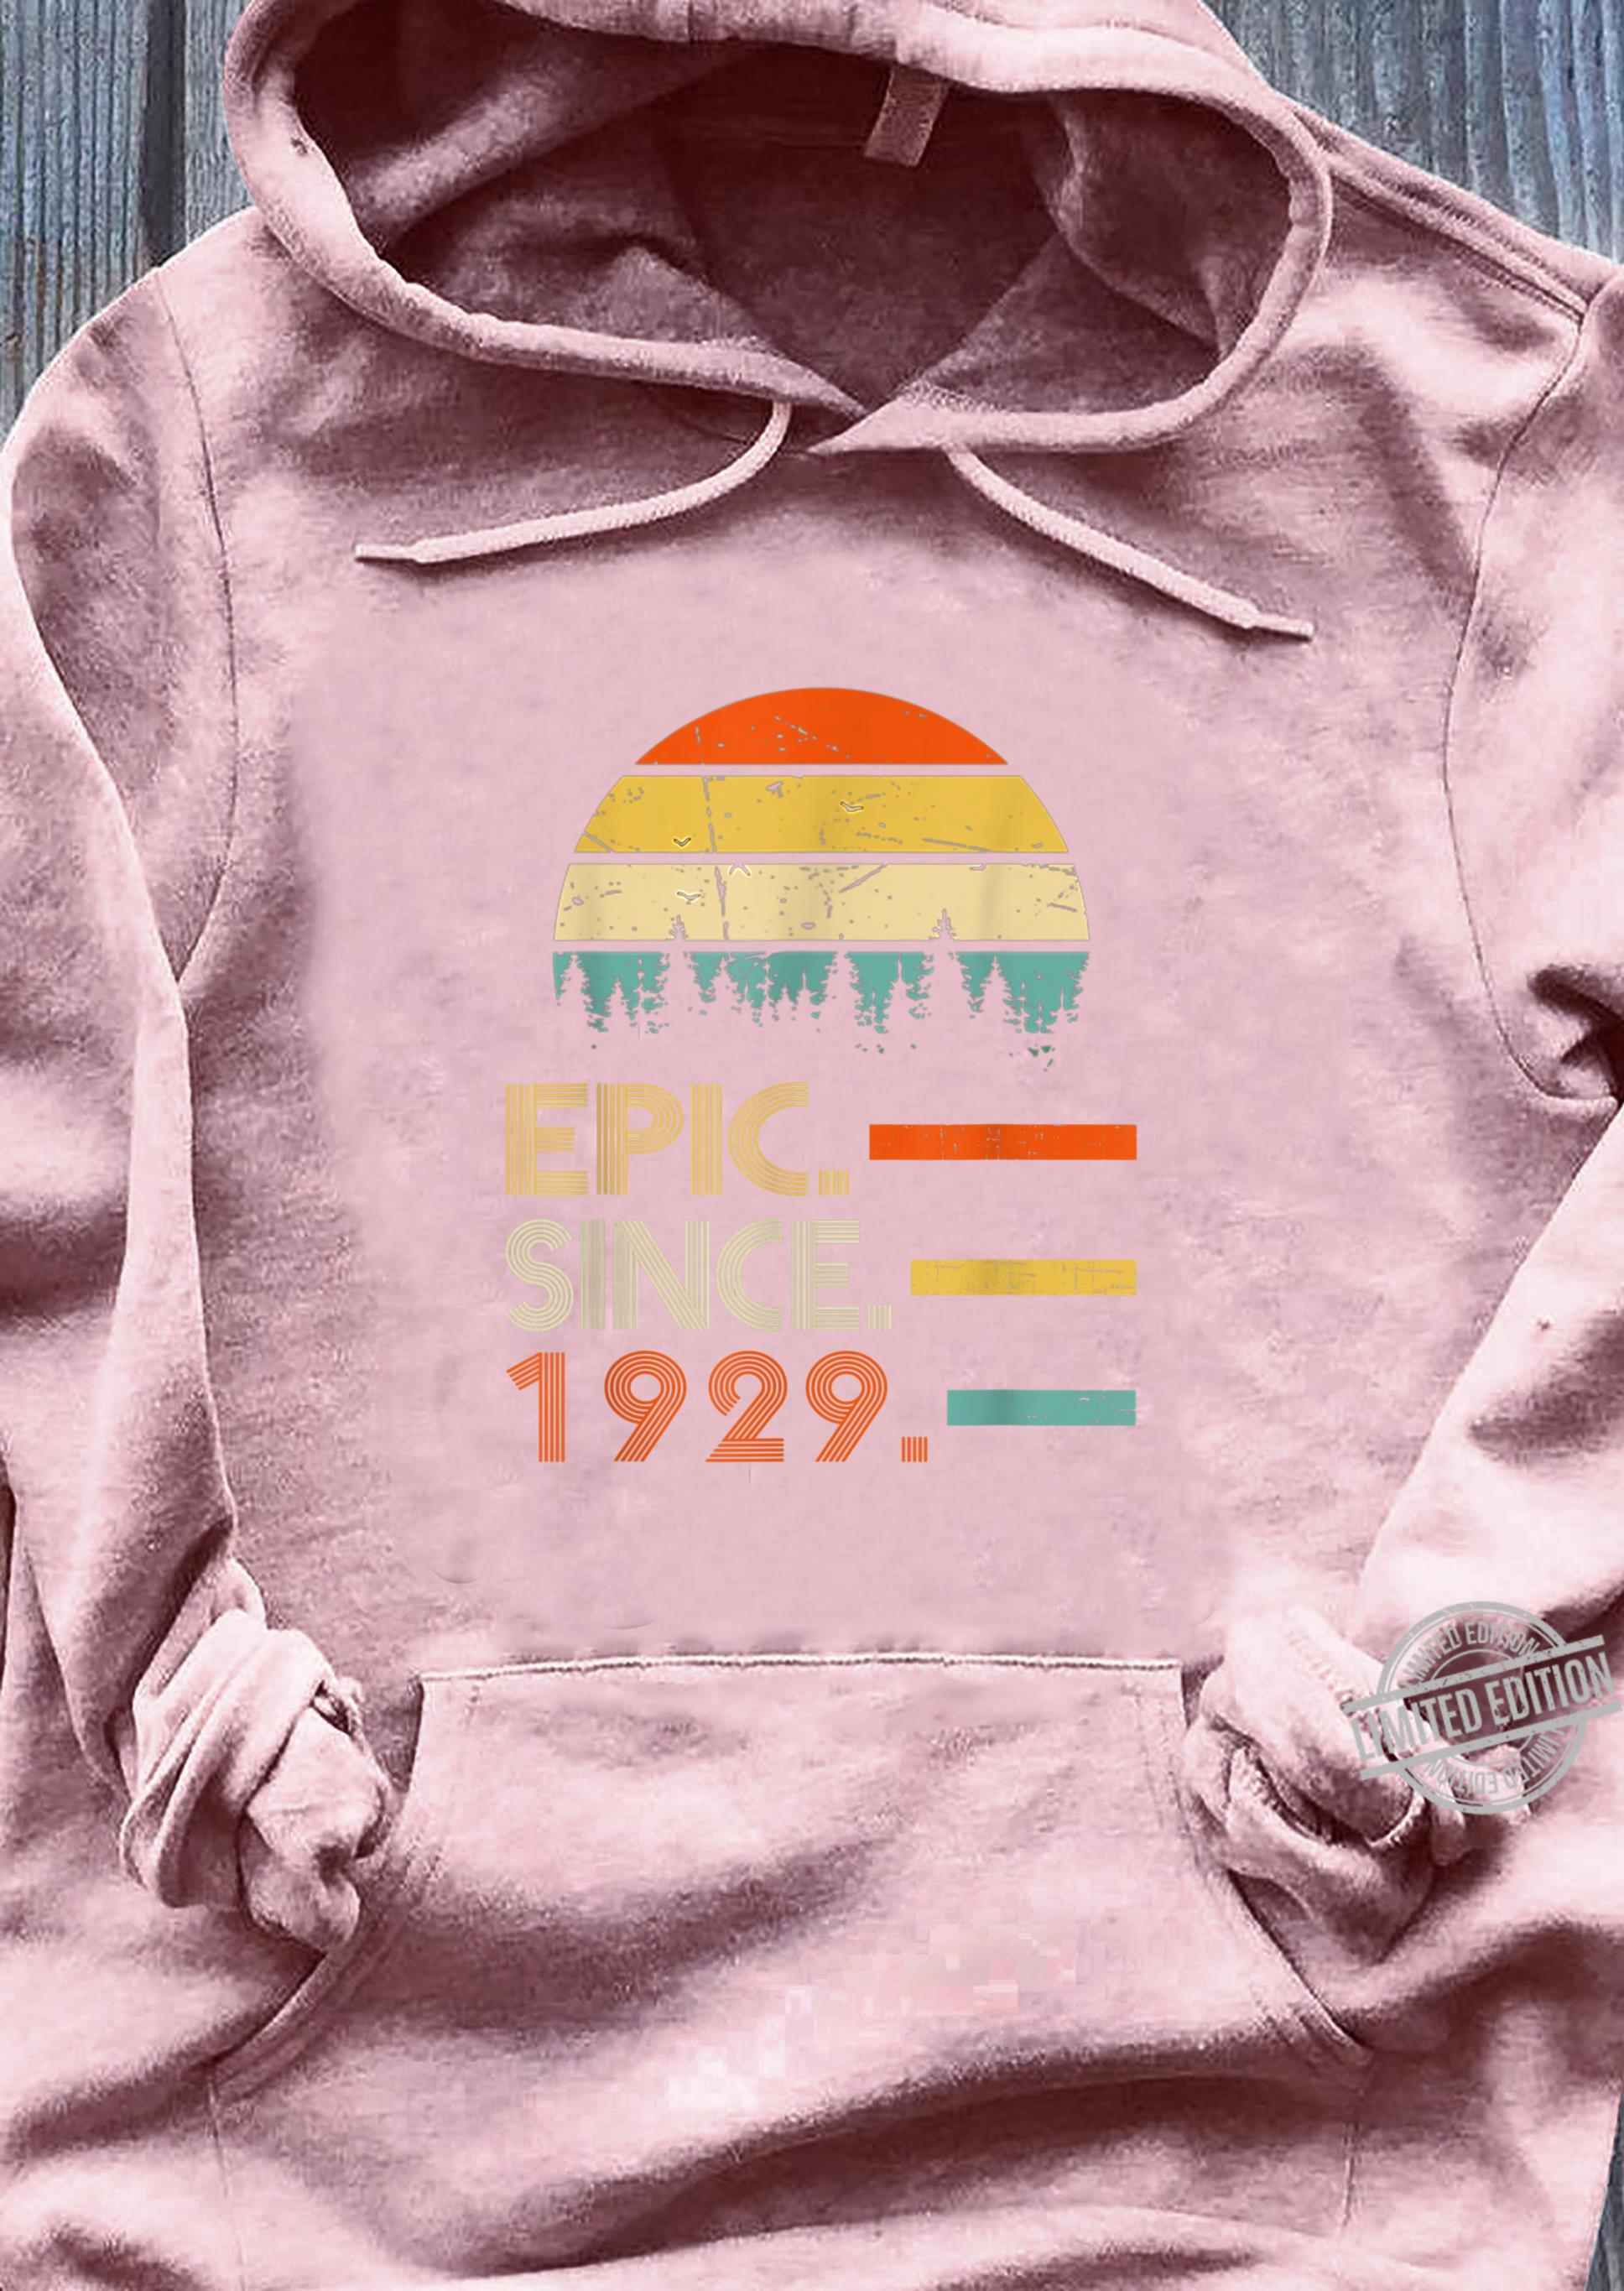 Epic Since 1929 91 Year Old Shirt 1929 Birthday Shirt sweater